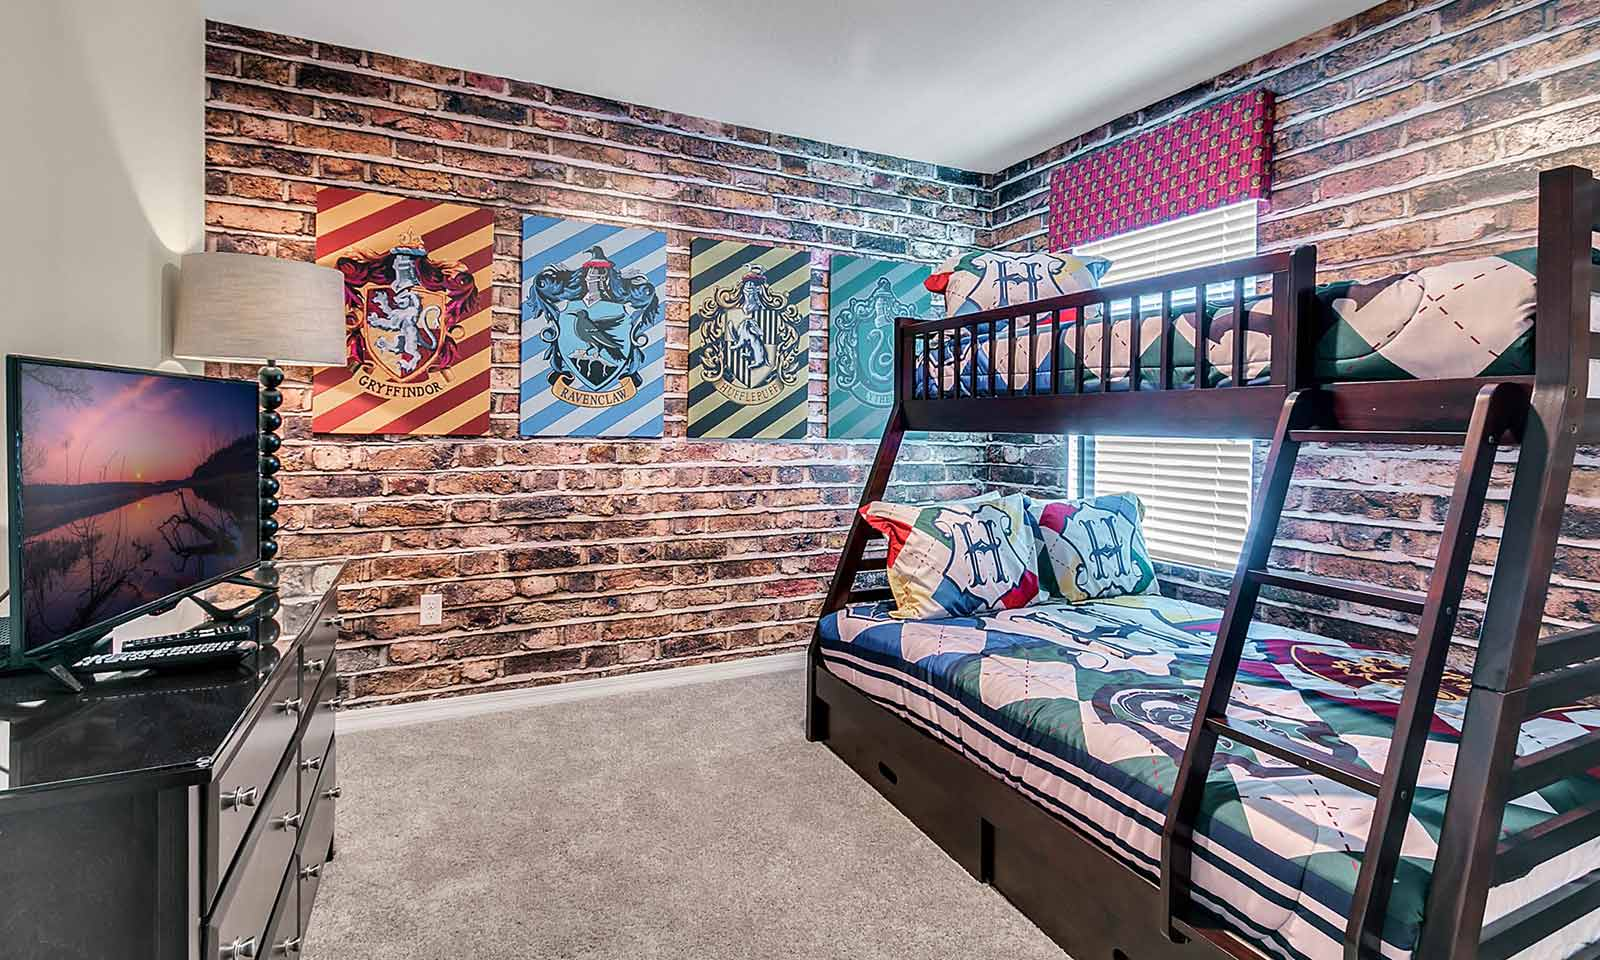 [amenities:Themed-Bedrooms:1] Themed Bedrooms